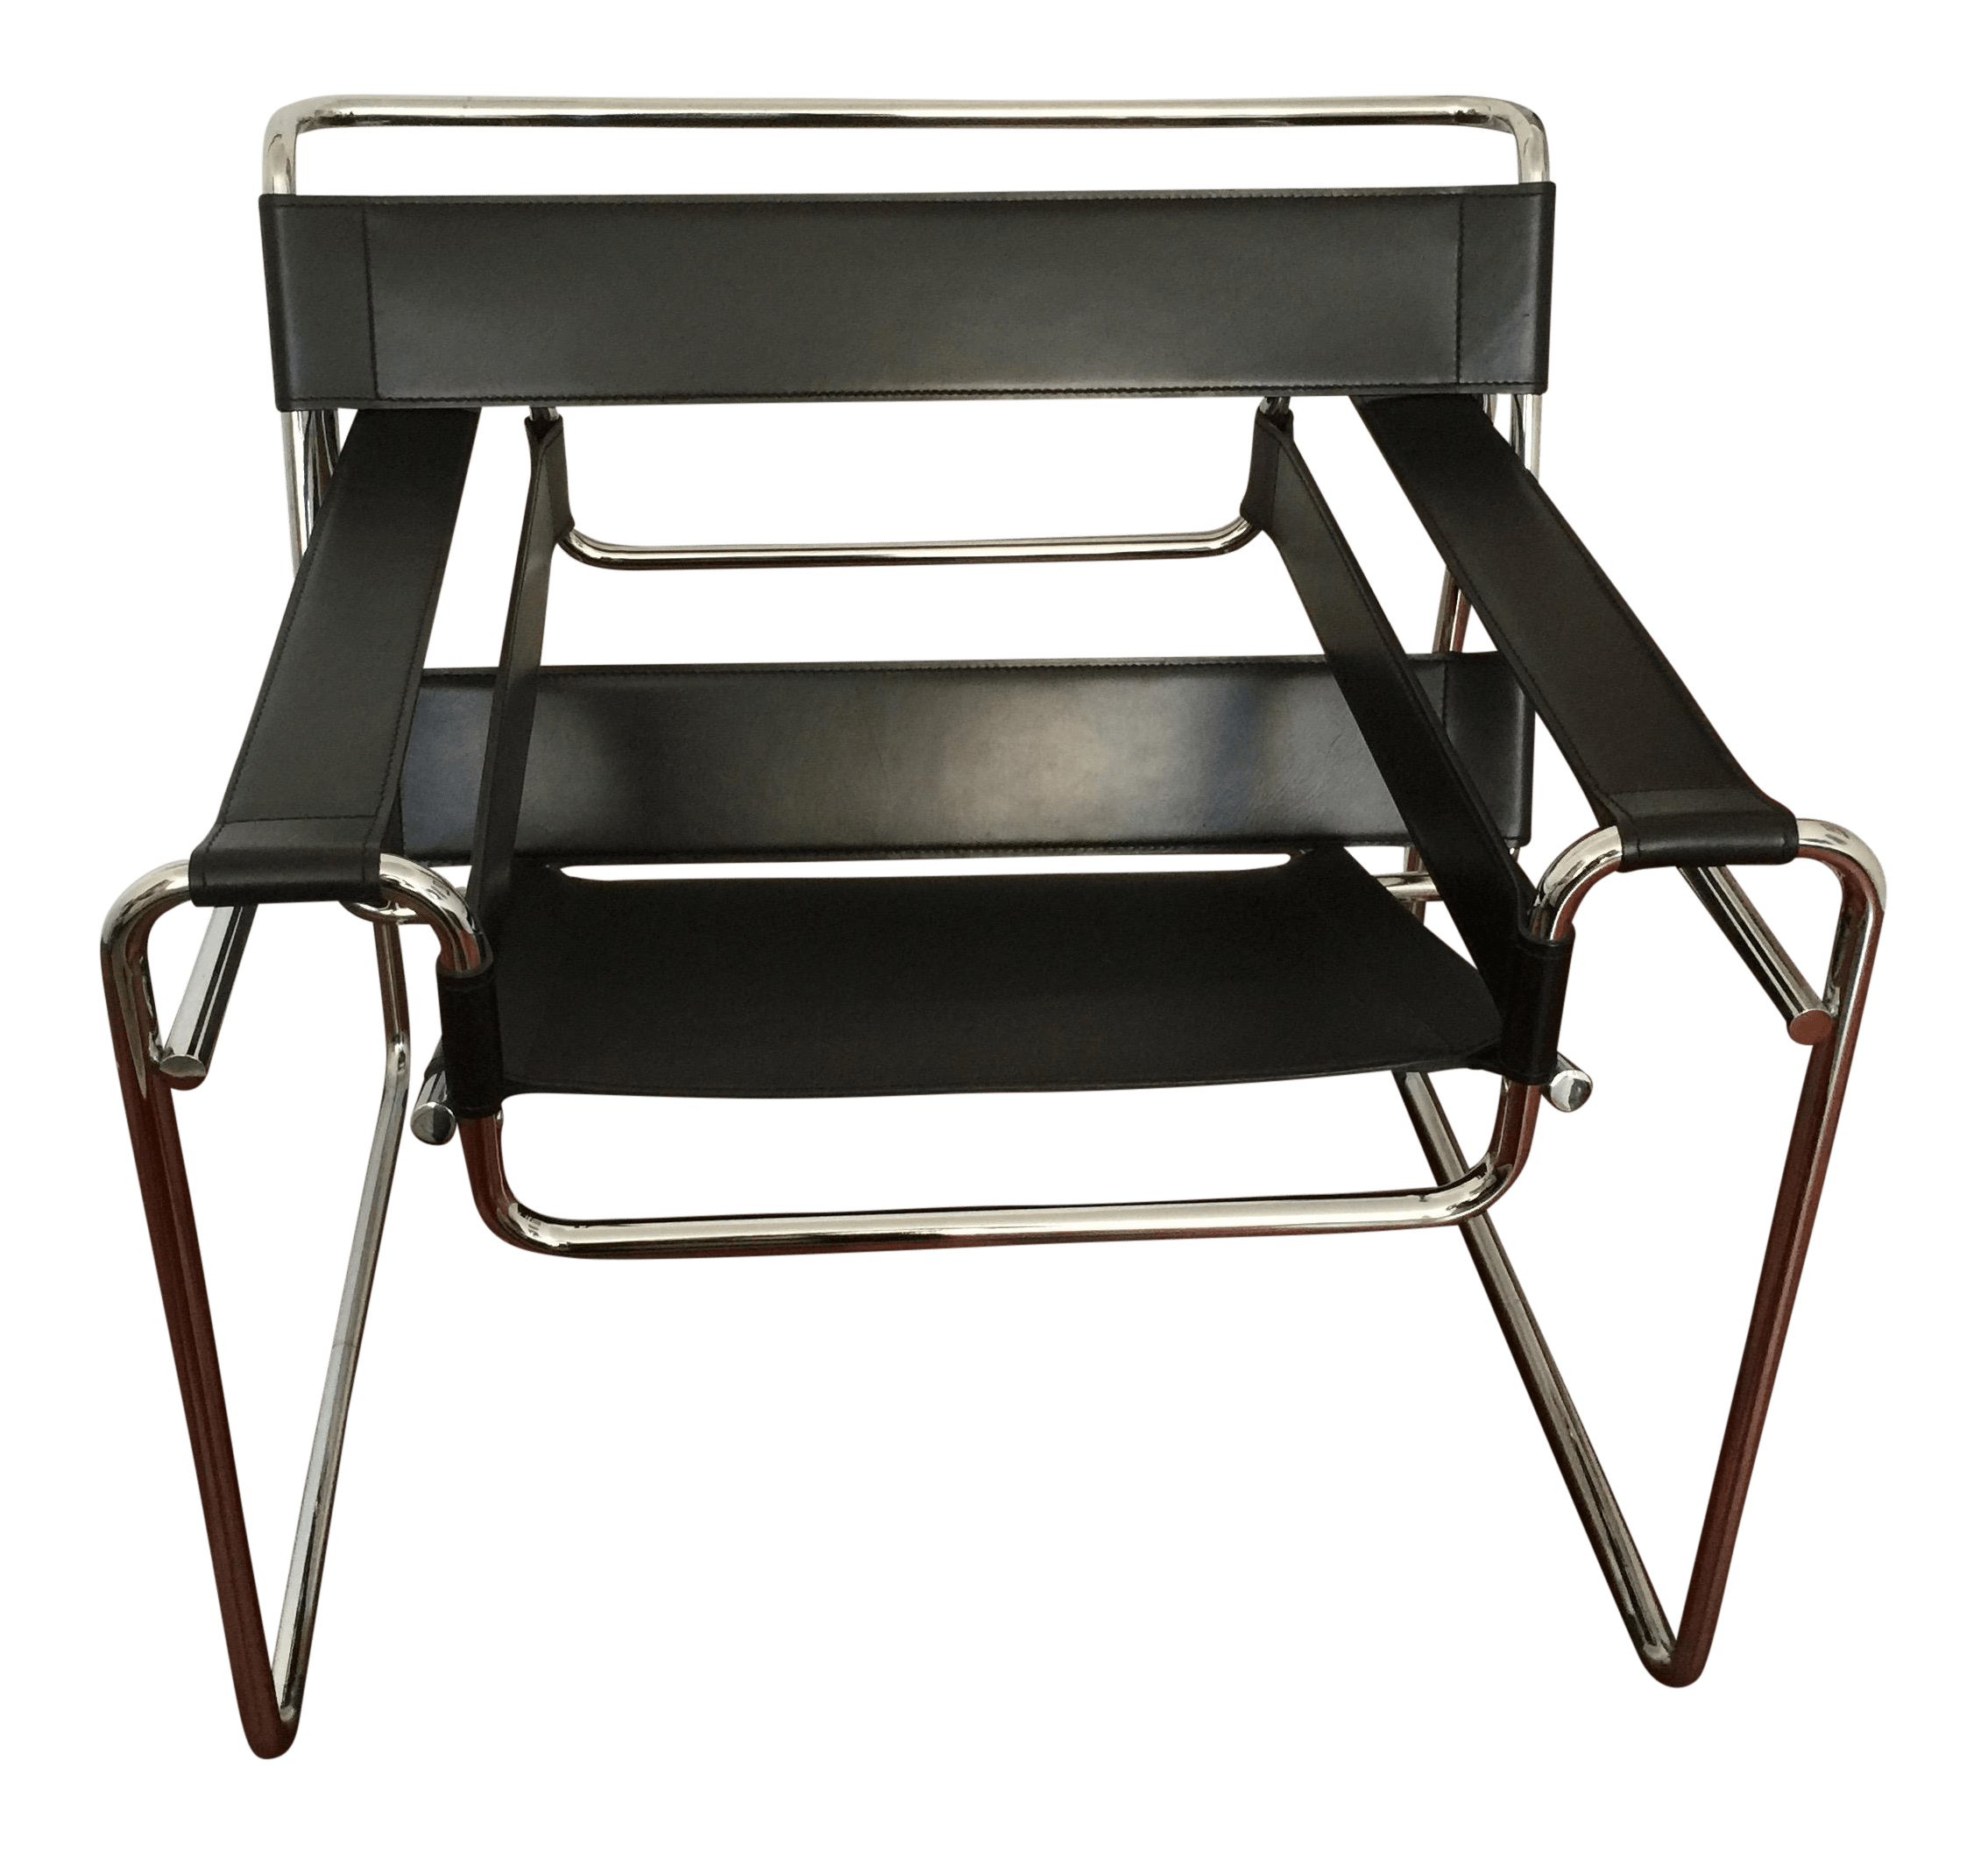 Wassily Chair Reproduction Wassily Chair Reproduction Chairish